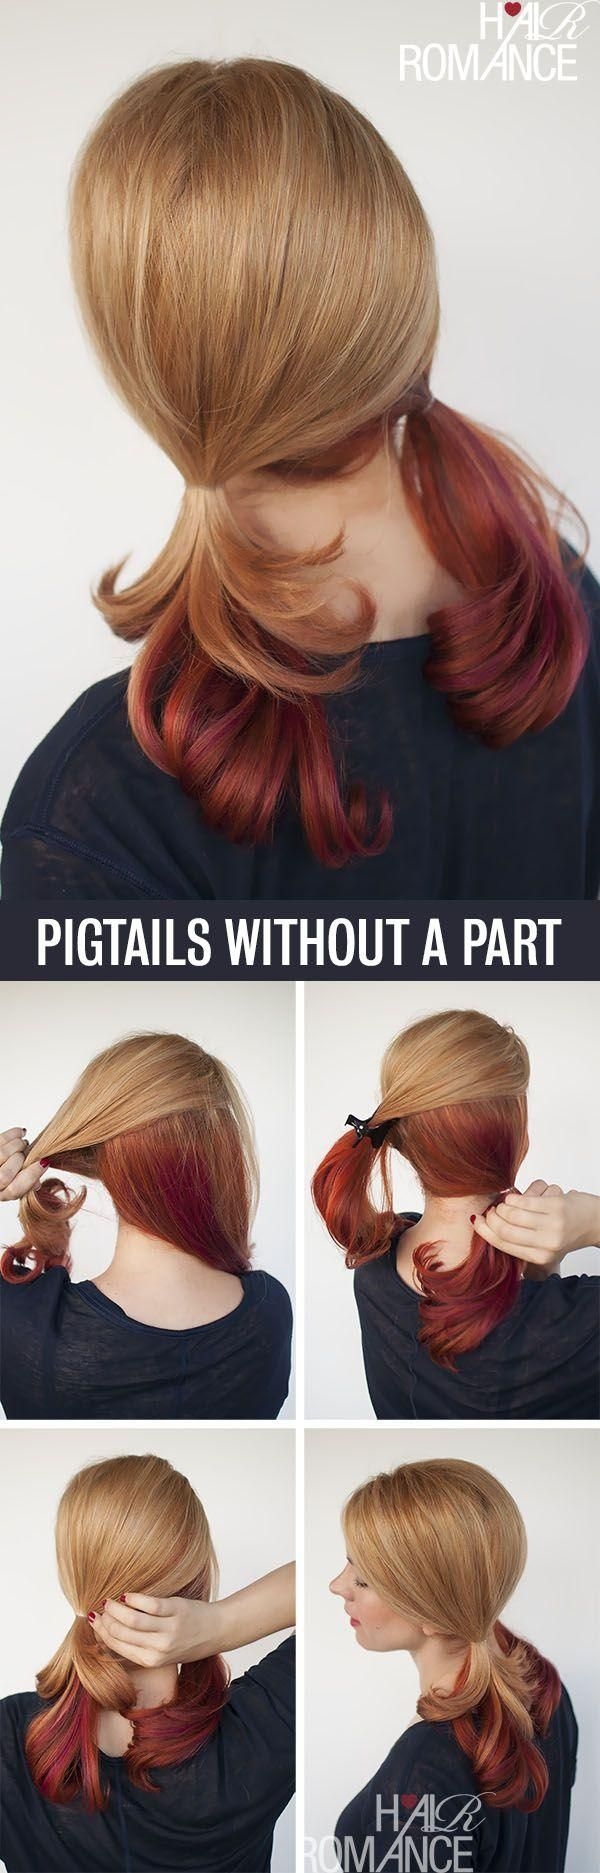 Pigtails without a part--cause I can never get it centered and straight!